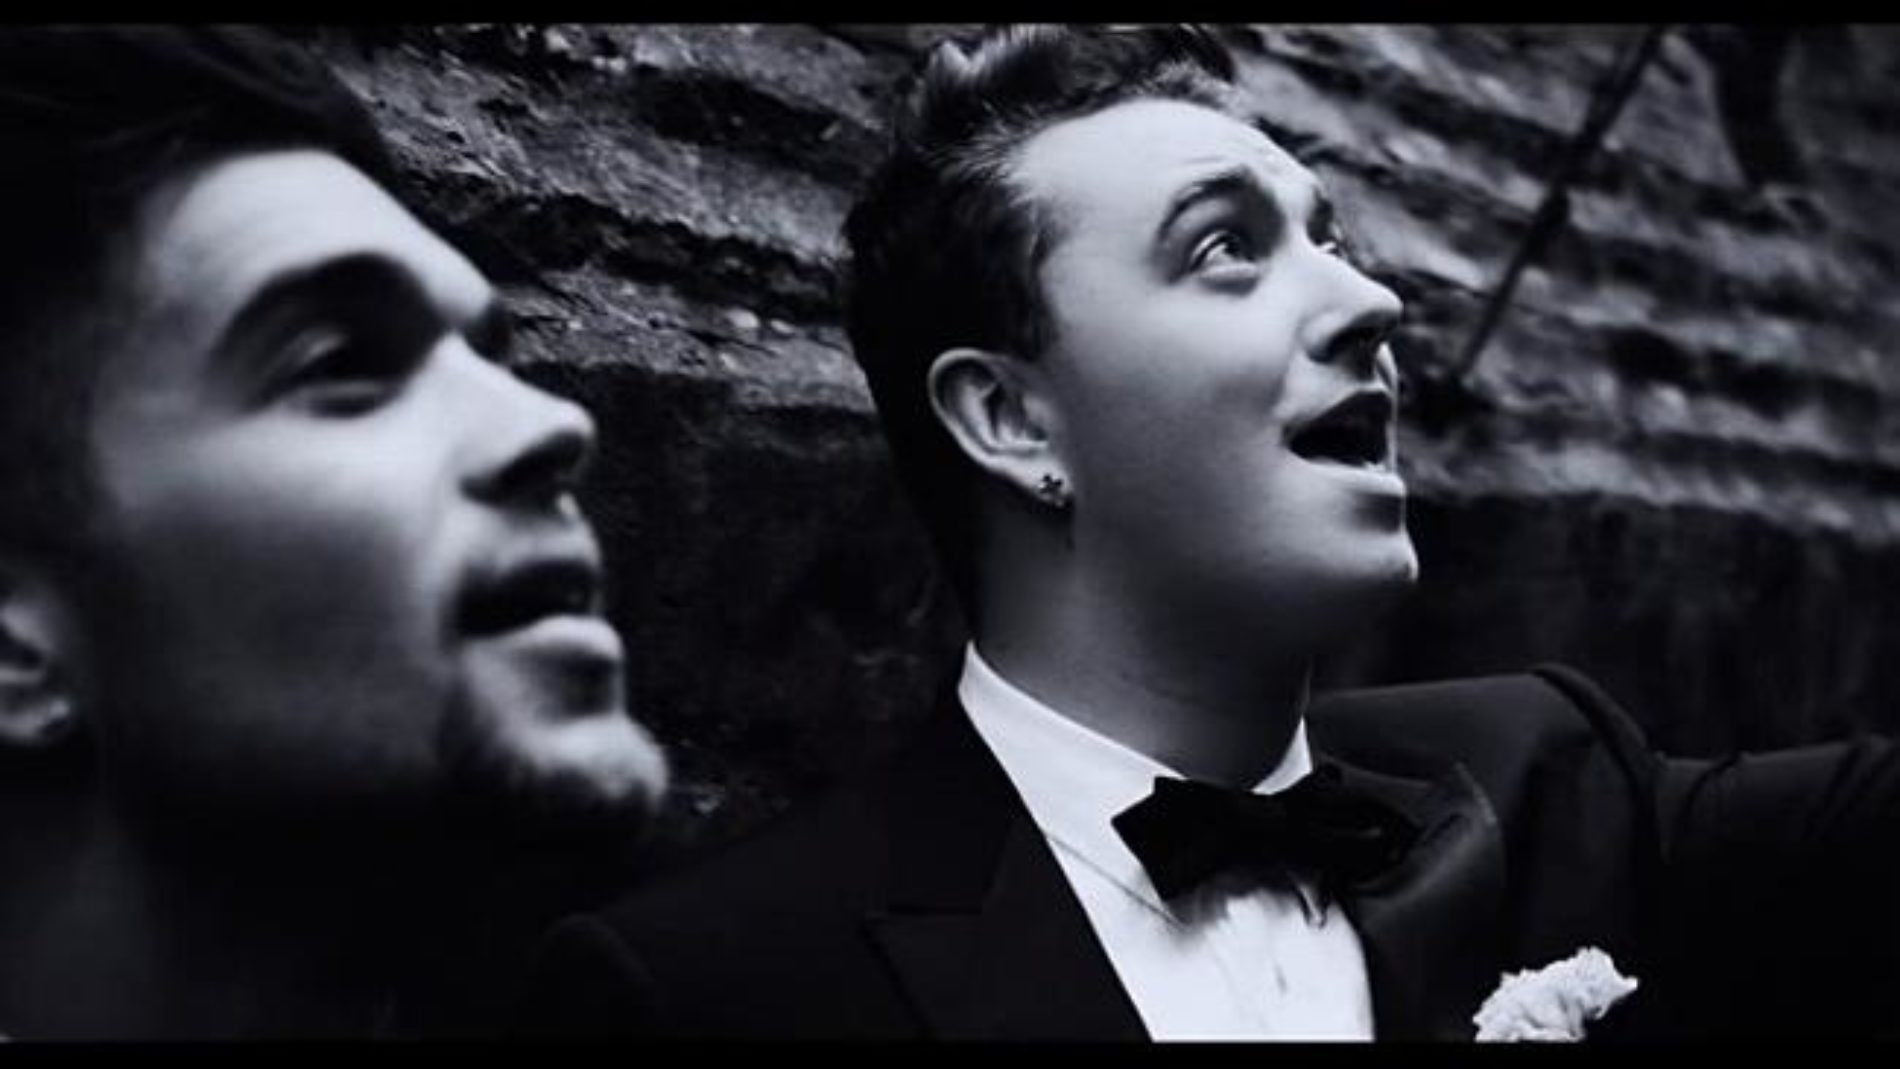 Sam Smith Doesn't Need Grindr When He Can Have His Pick From Music Video Extras Hanging Around